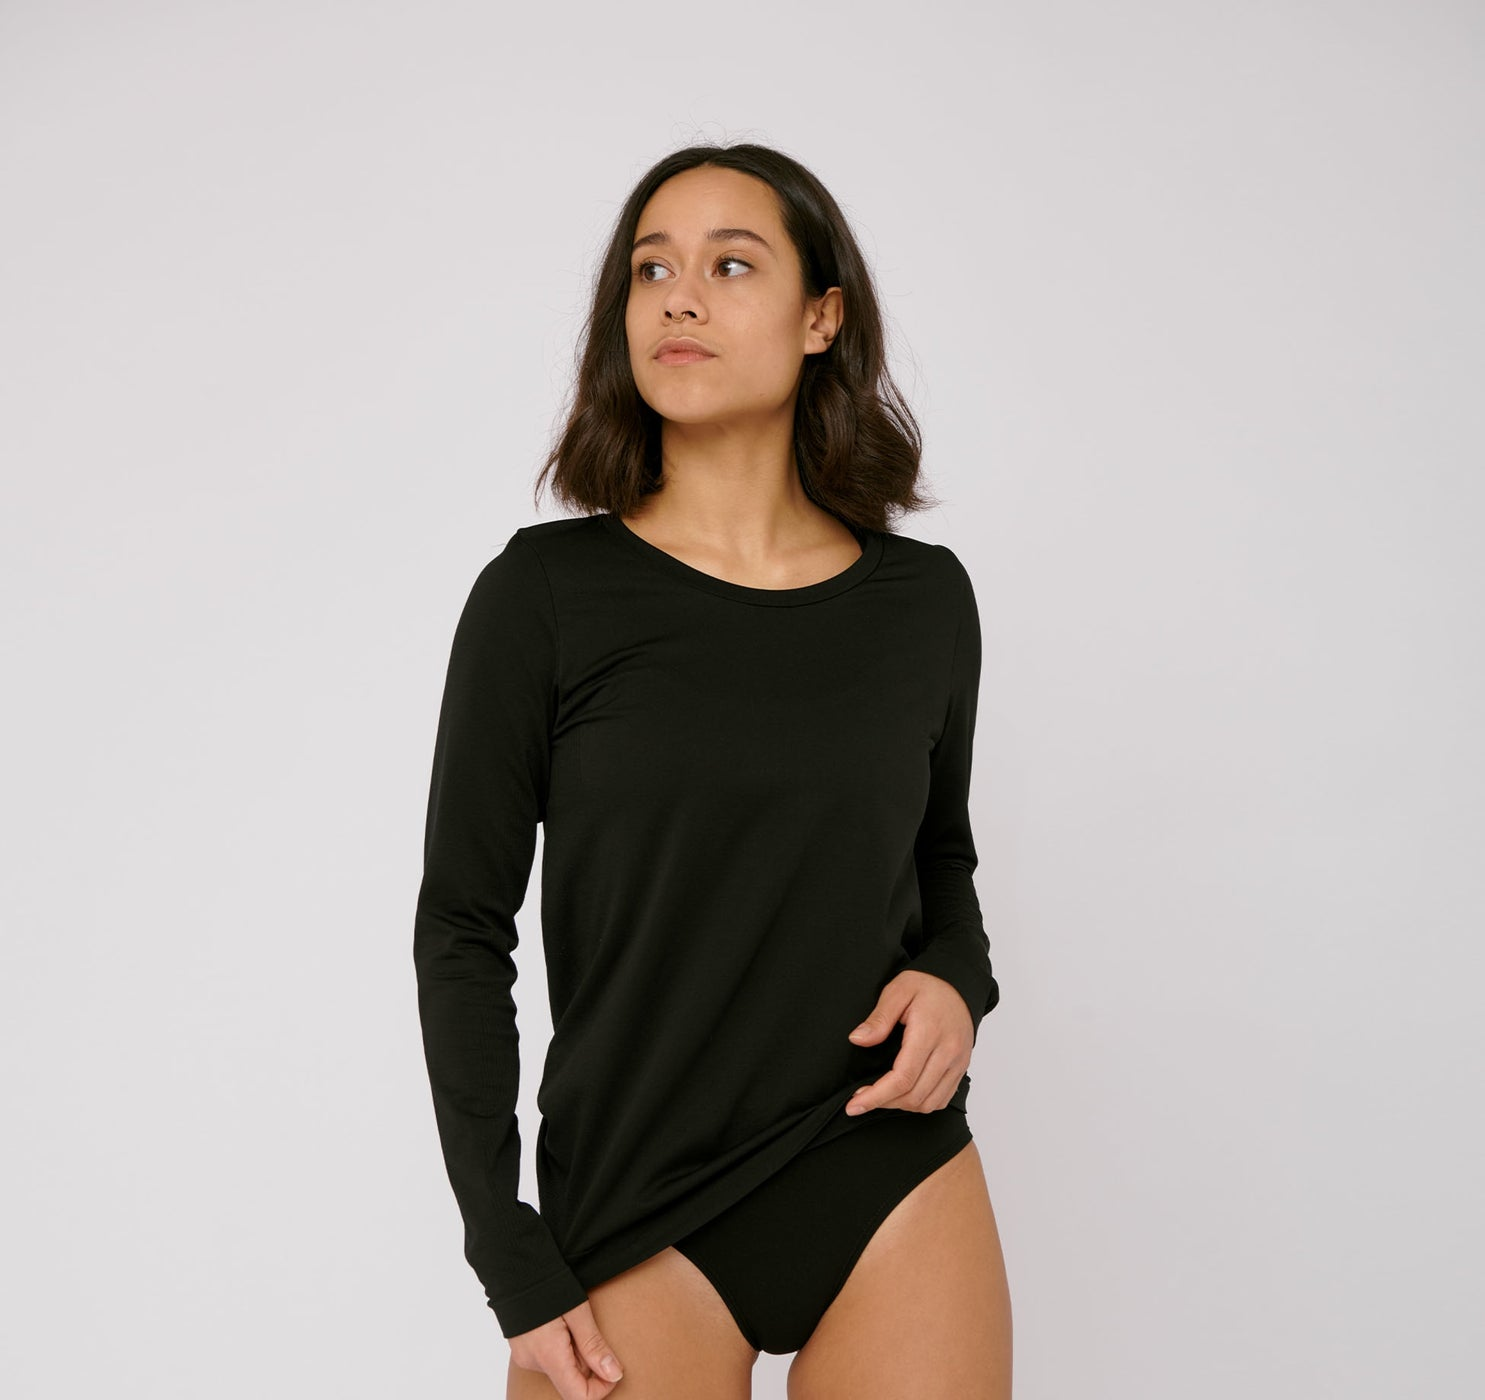 SilverTech™ Active Long-Sleeve